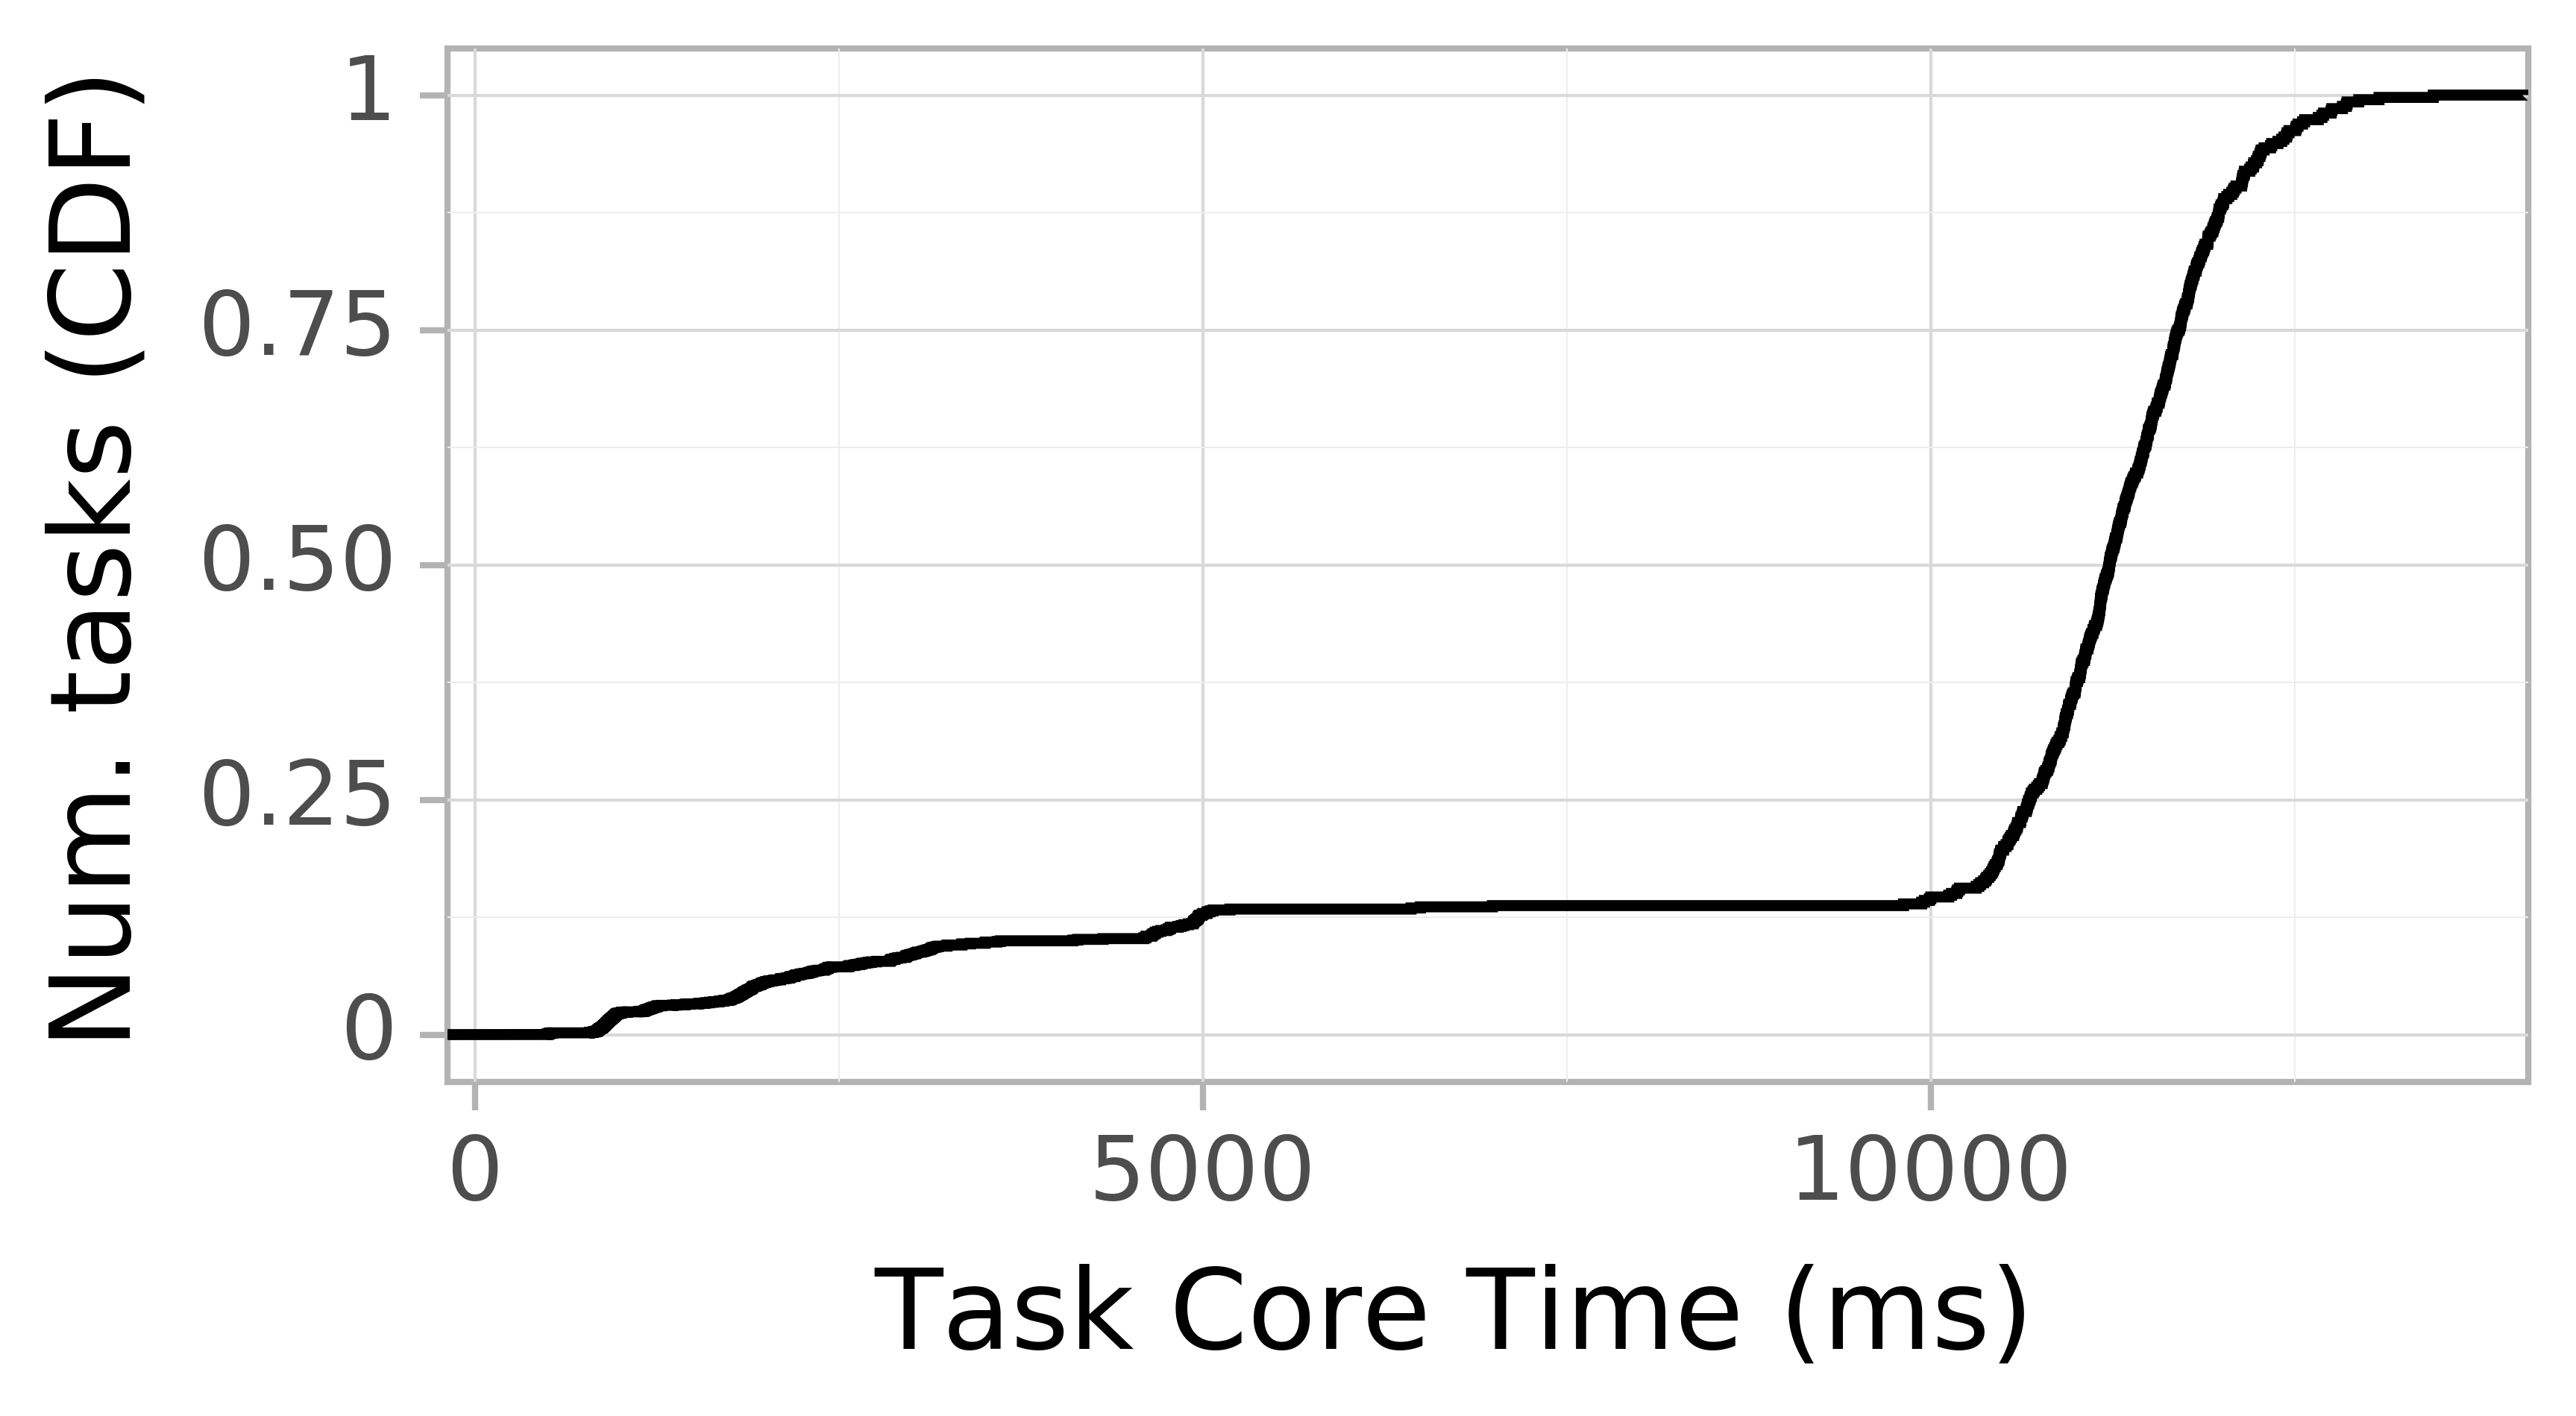 task resource time CDF graph for the askalon-new_ee43 trace.